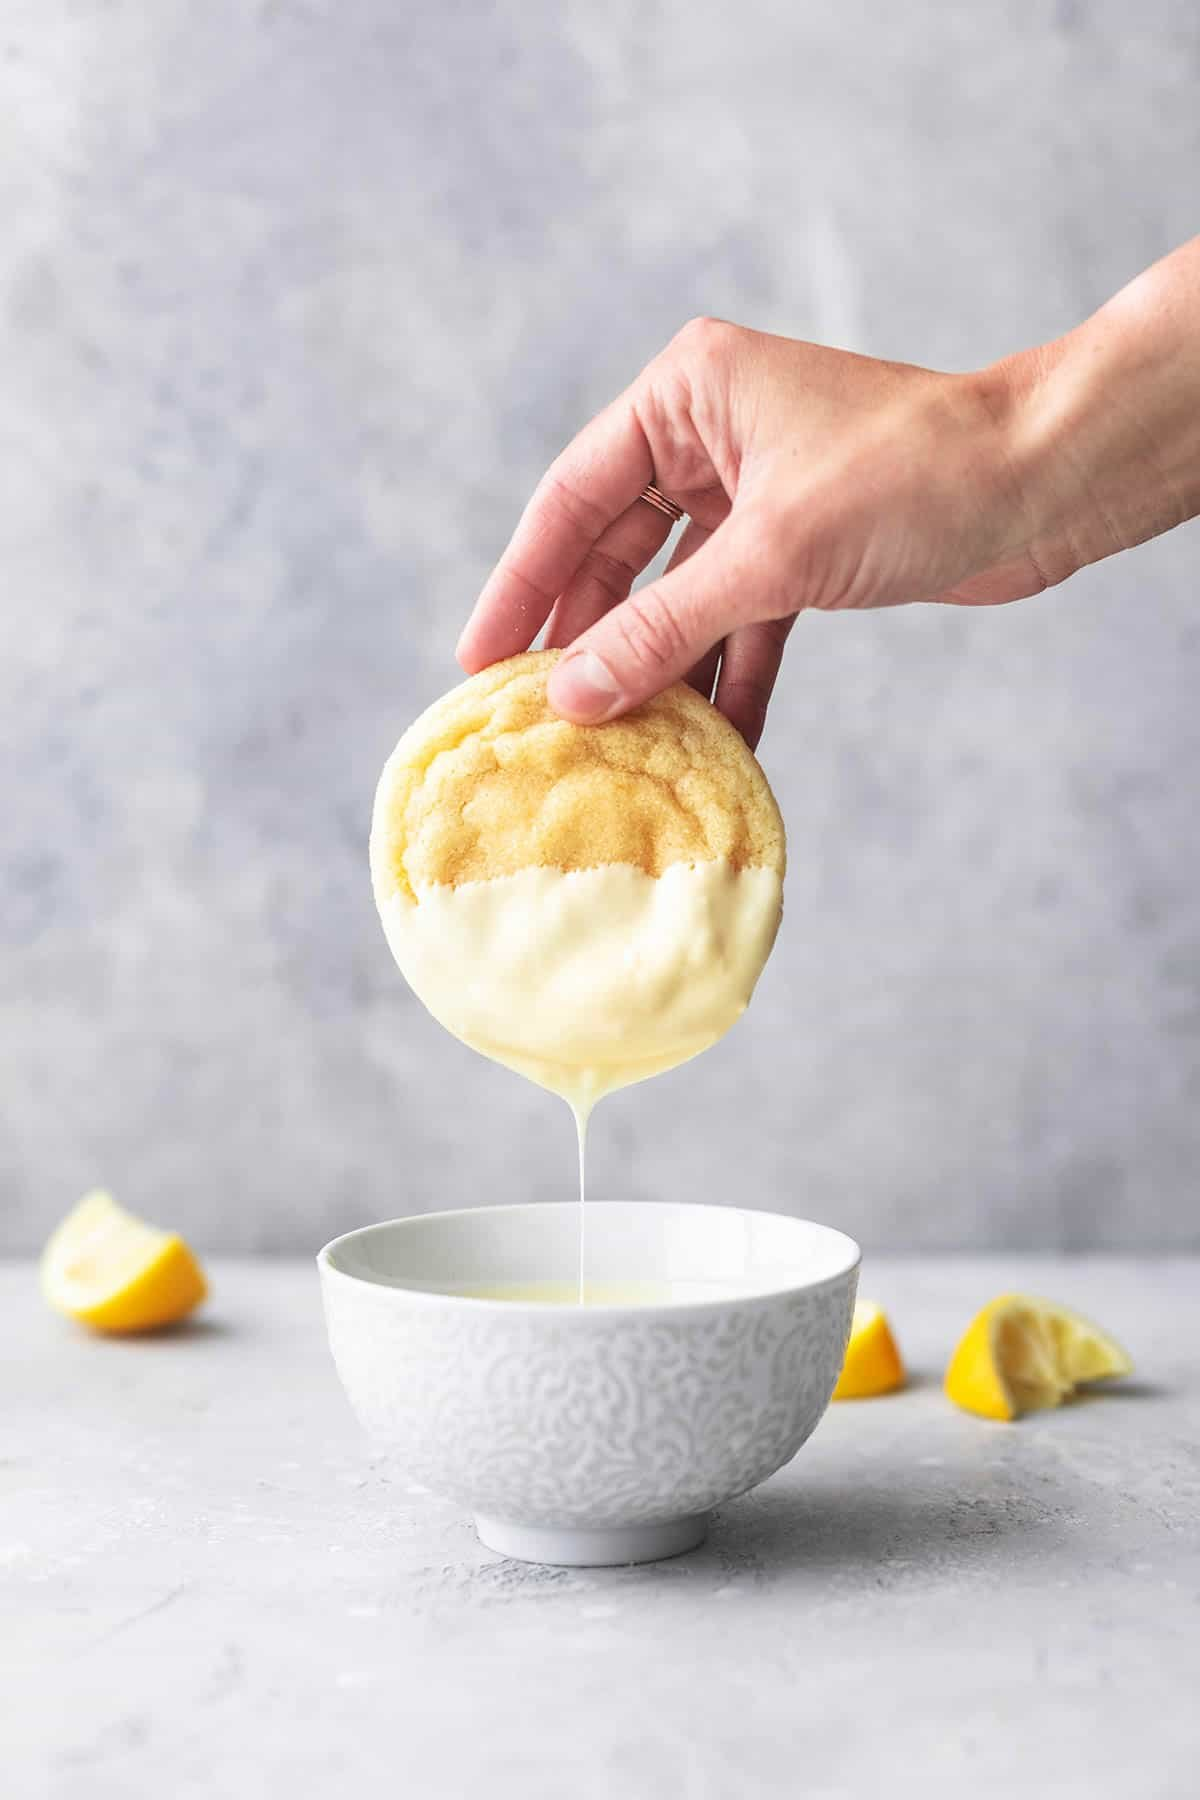 hand dipping lemon cookie into melted white chocolate in bowl